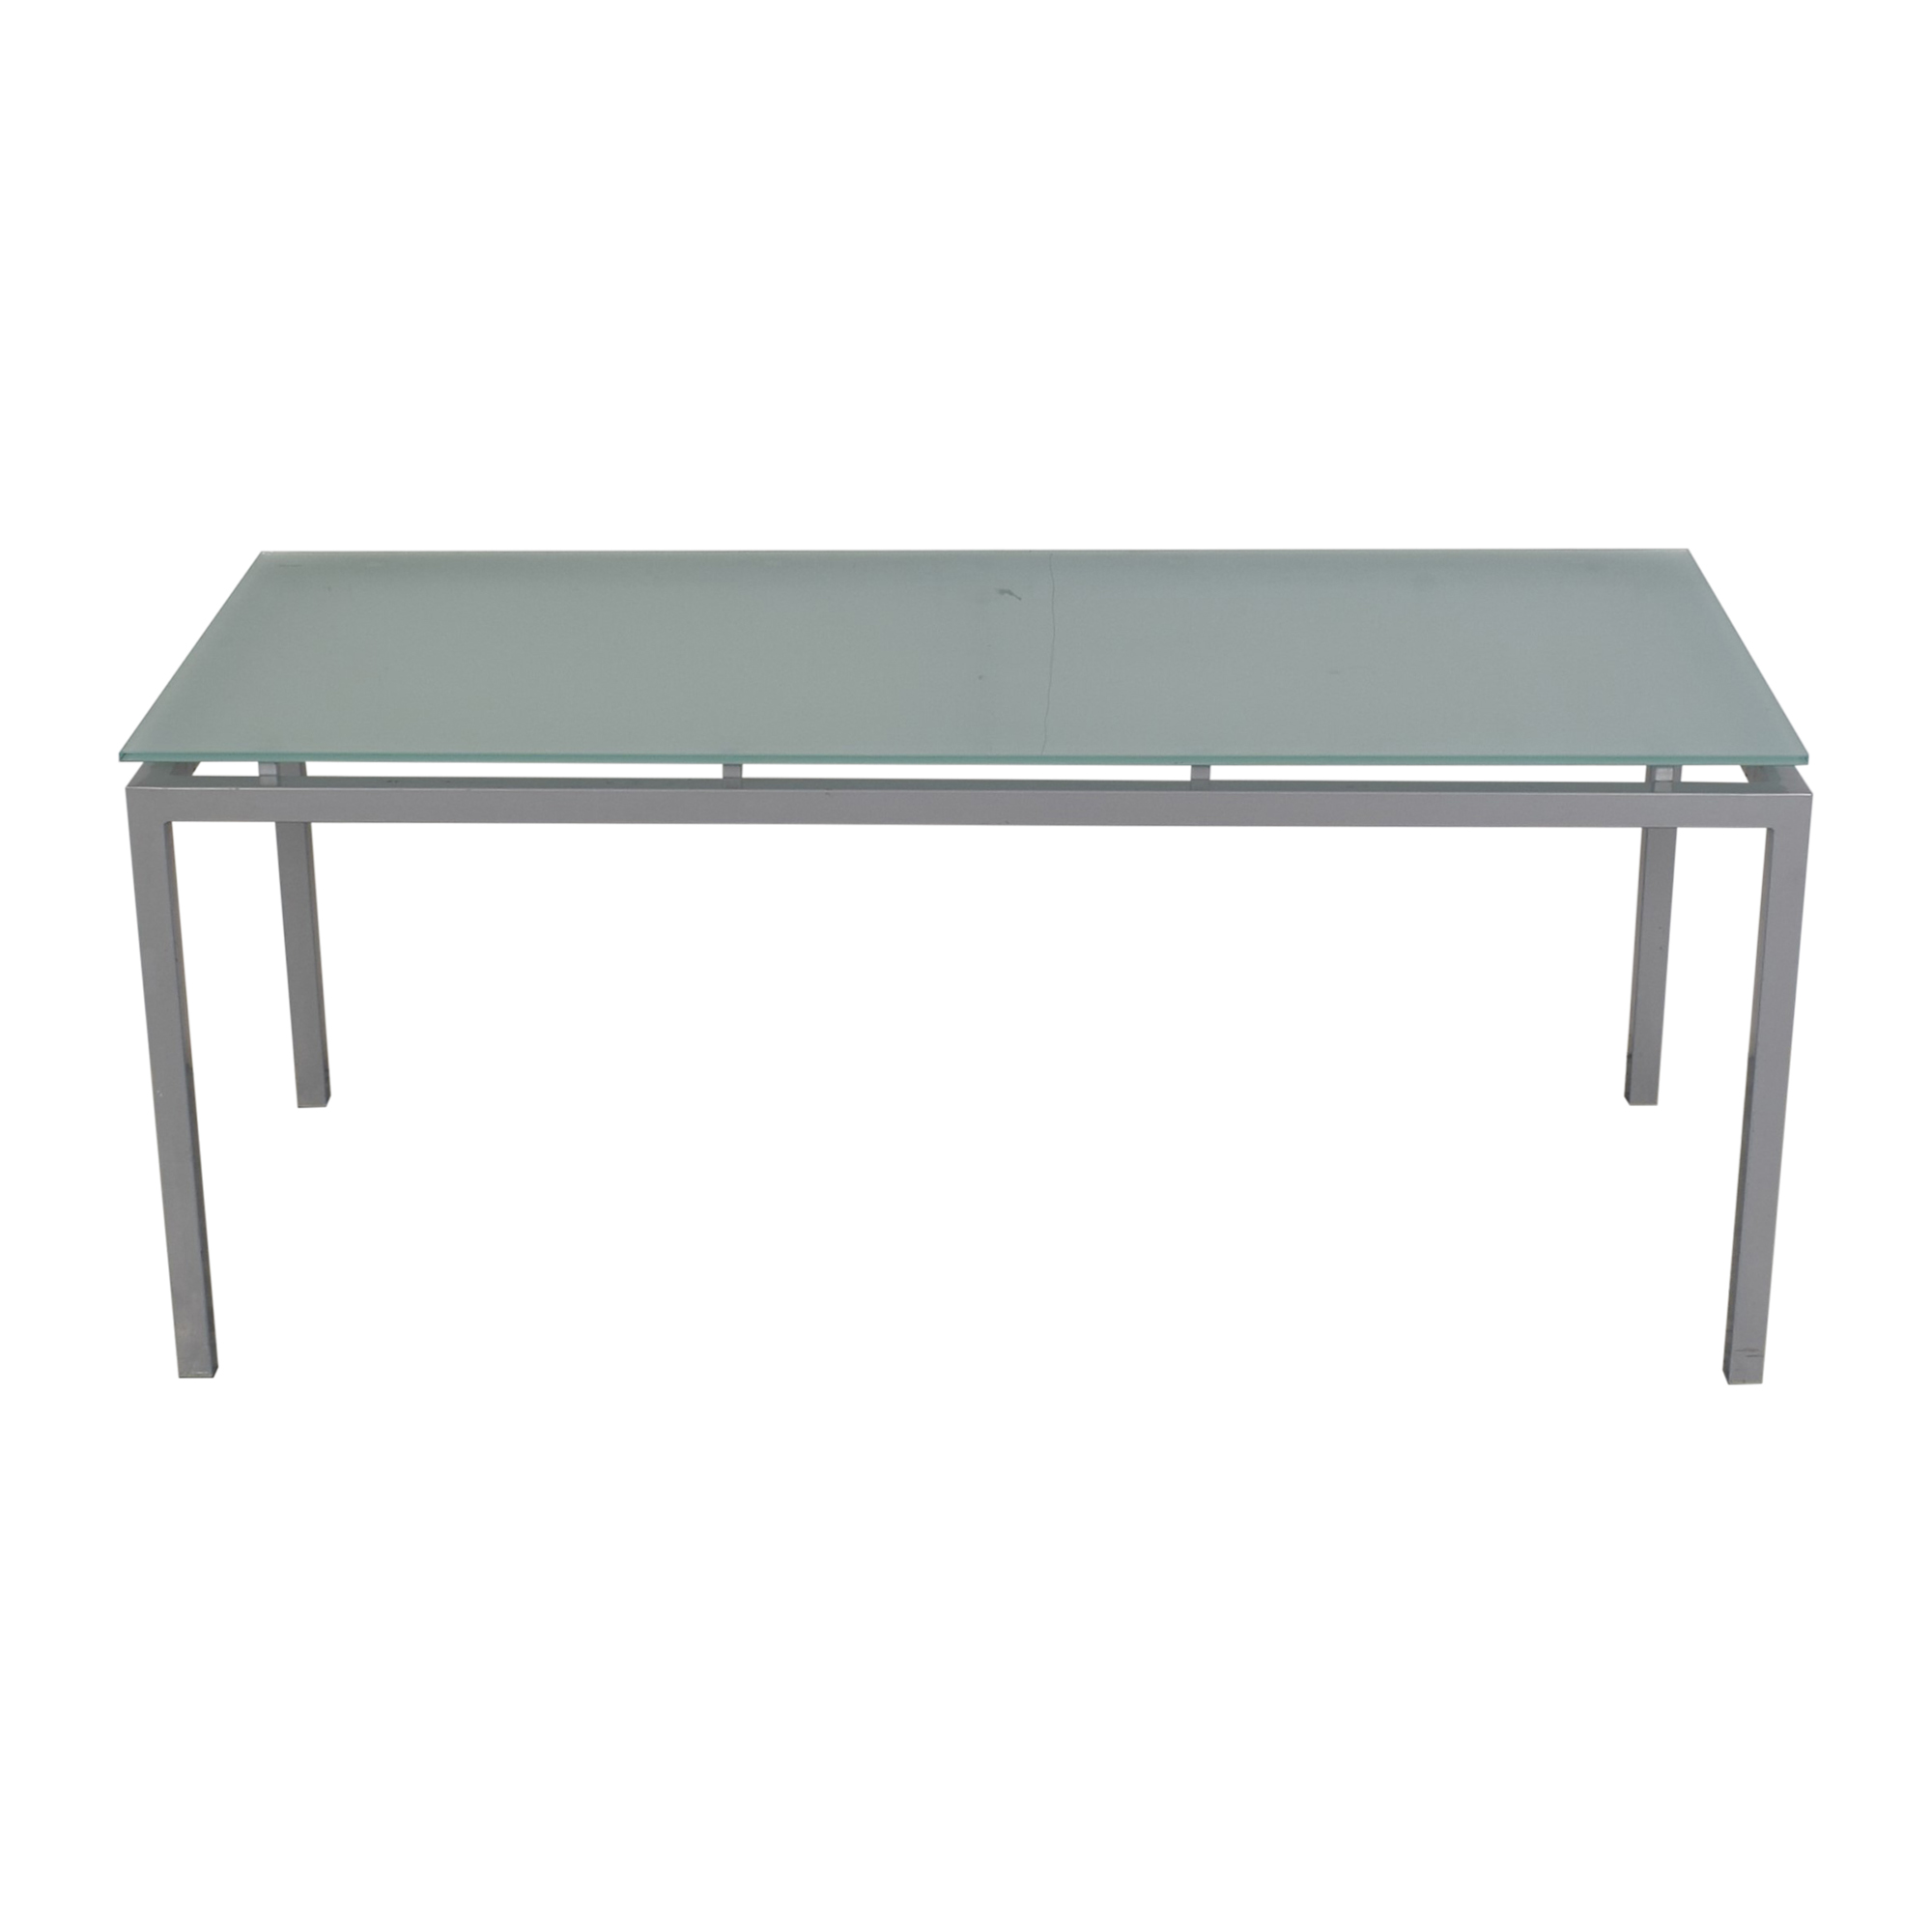 Aluminum and Glass Dinner Table for sale